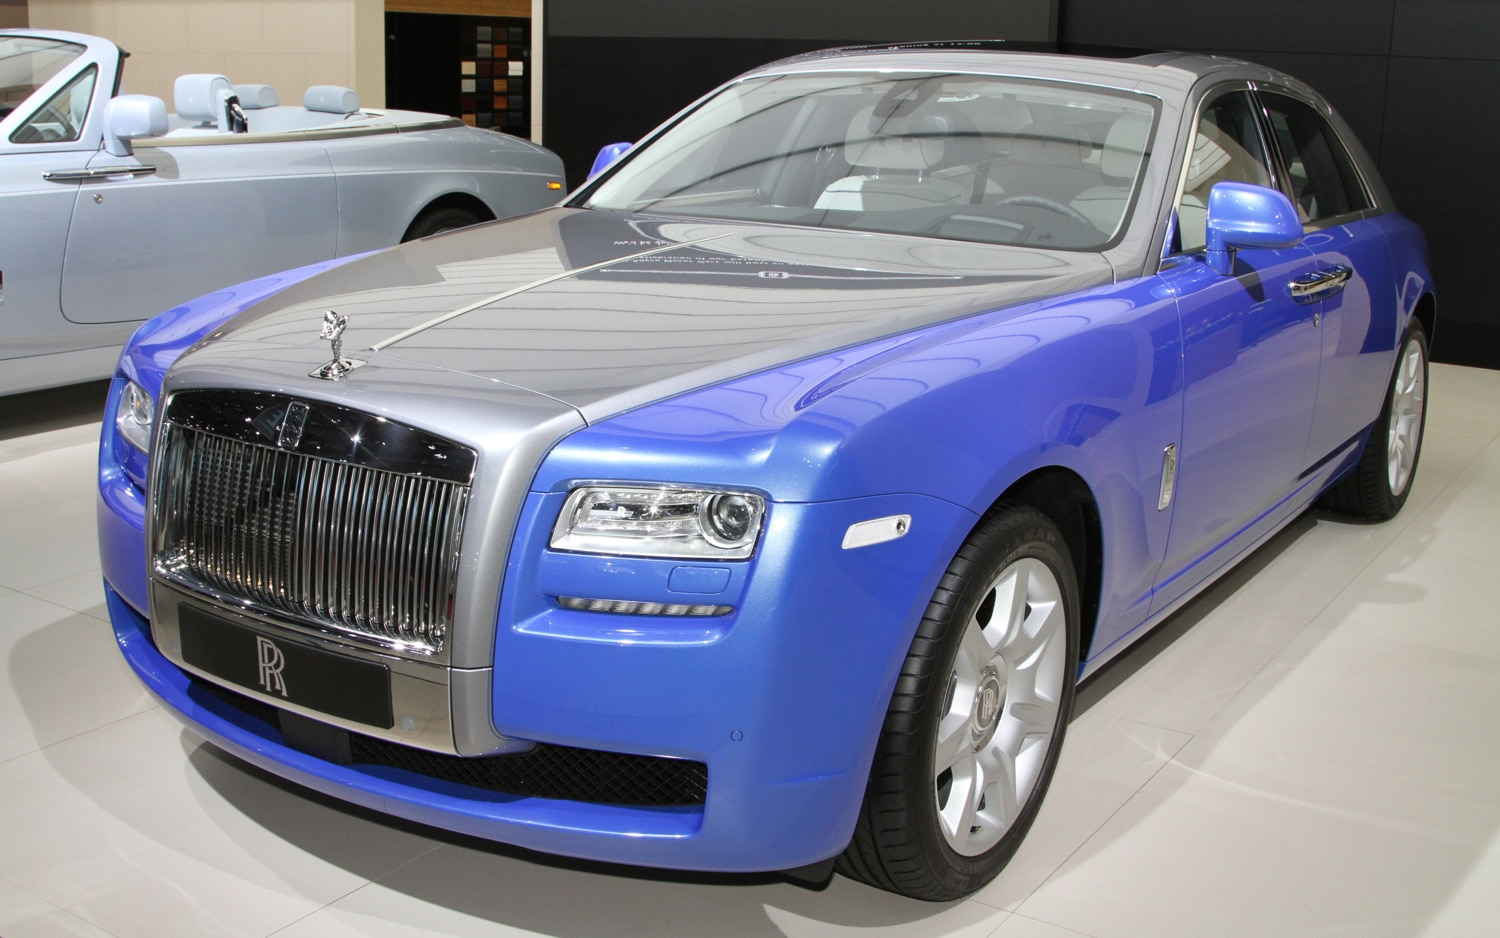 paris 2012 rolls royce unveils artsy phantom ghost models with art deco theme. Black Bedroom Furniture Sets. Home Design Ideas